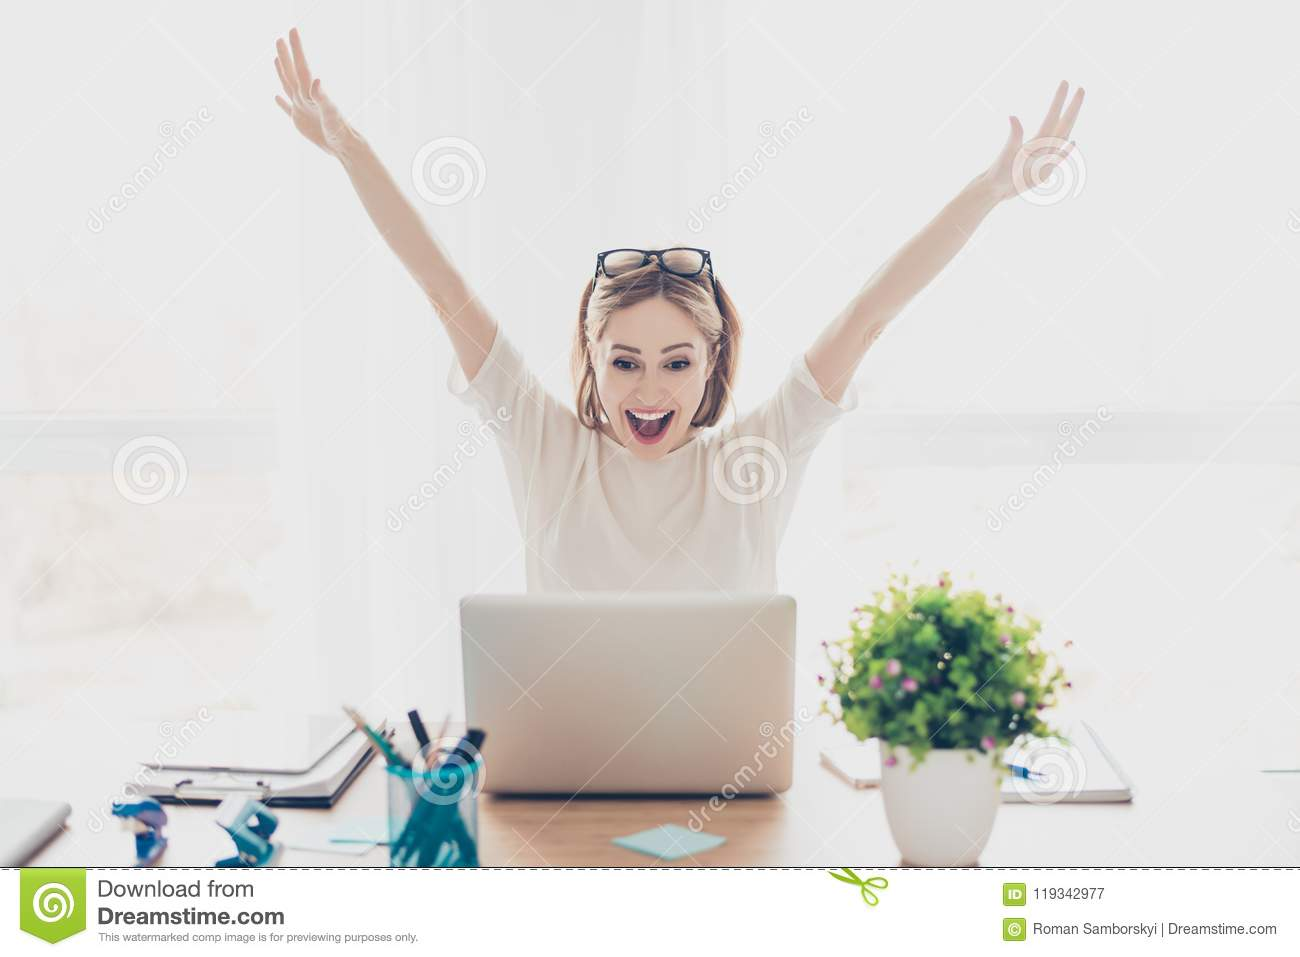 Happy excited successful businesswoman triumphing with laptop sitting at workstation workplace sitting at table in light room rais